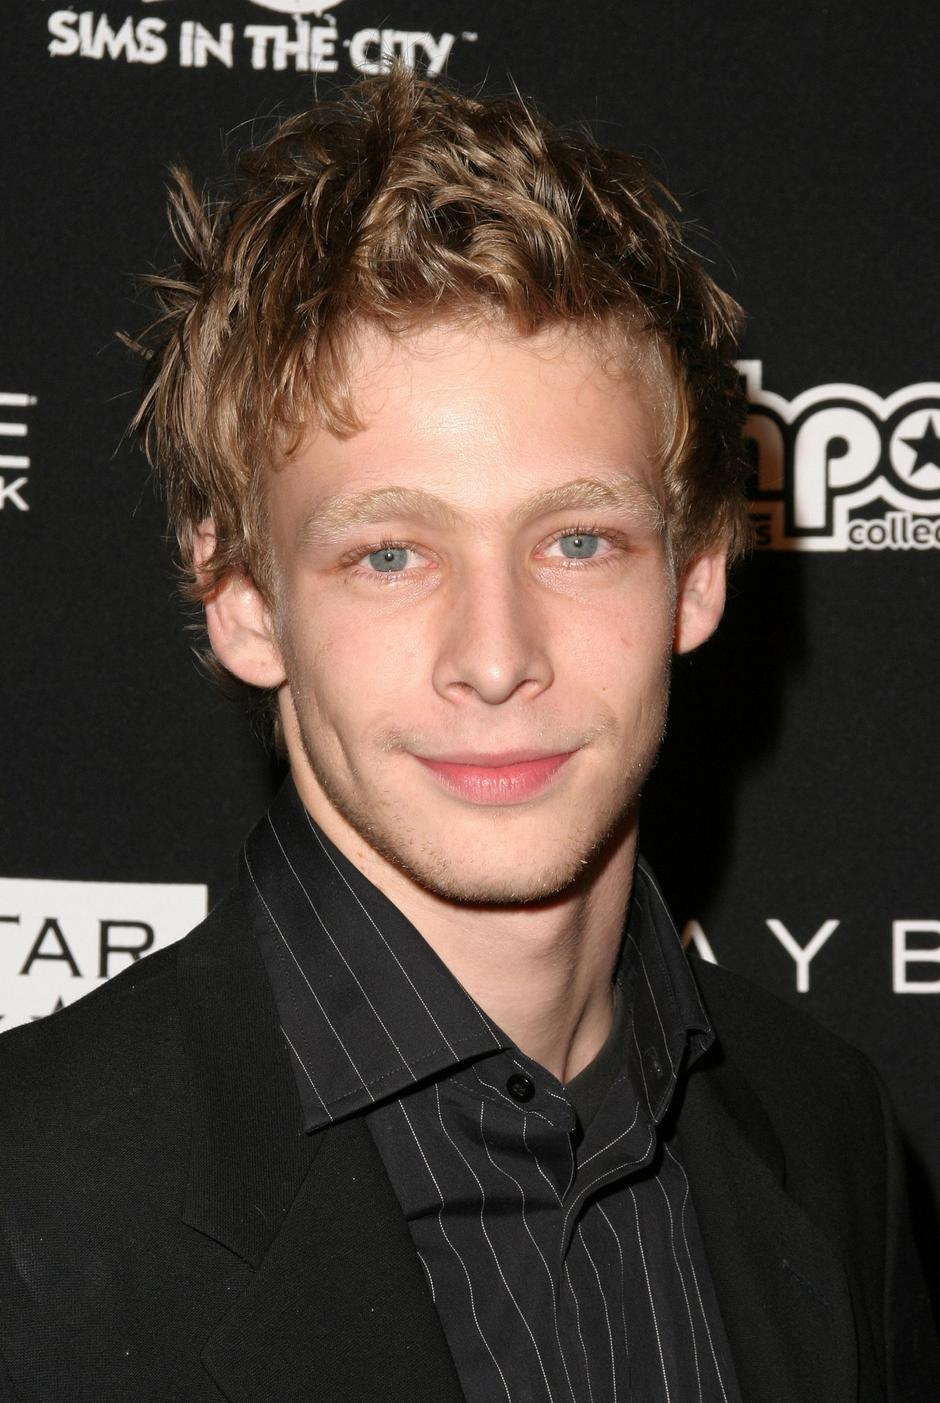 ABACA Johnny Lewis - Teen People 2004 | Autor: ABACA   ABACA PRESS/Press Association/PIXSELL